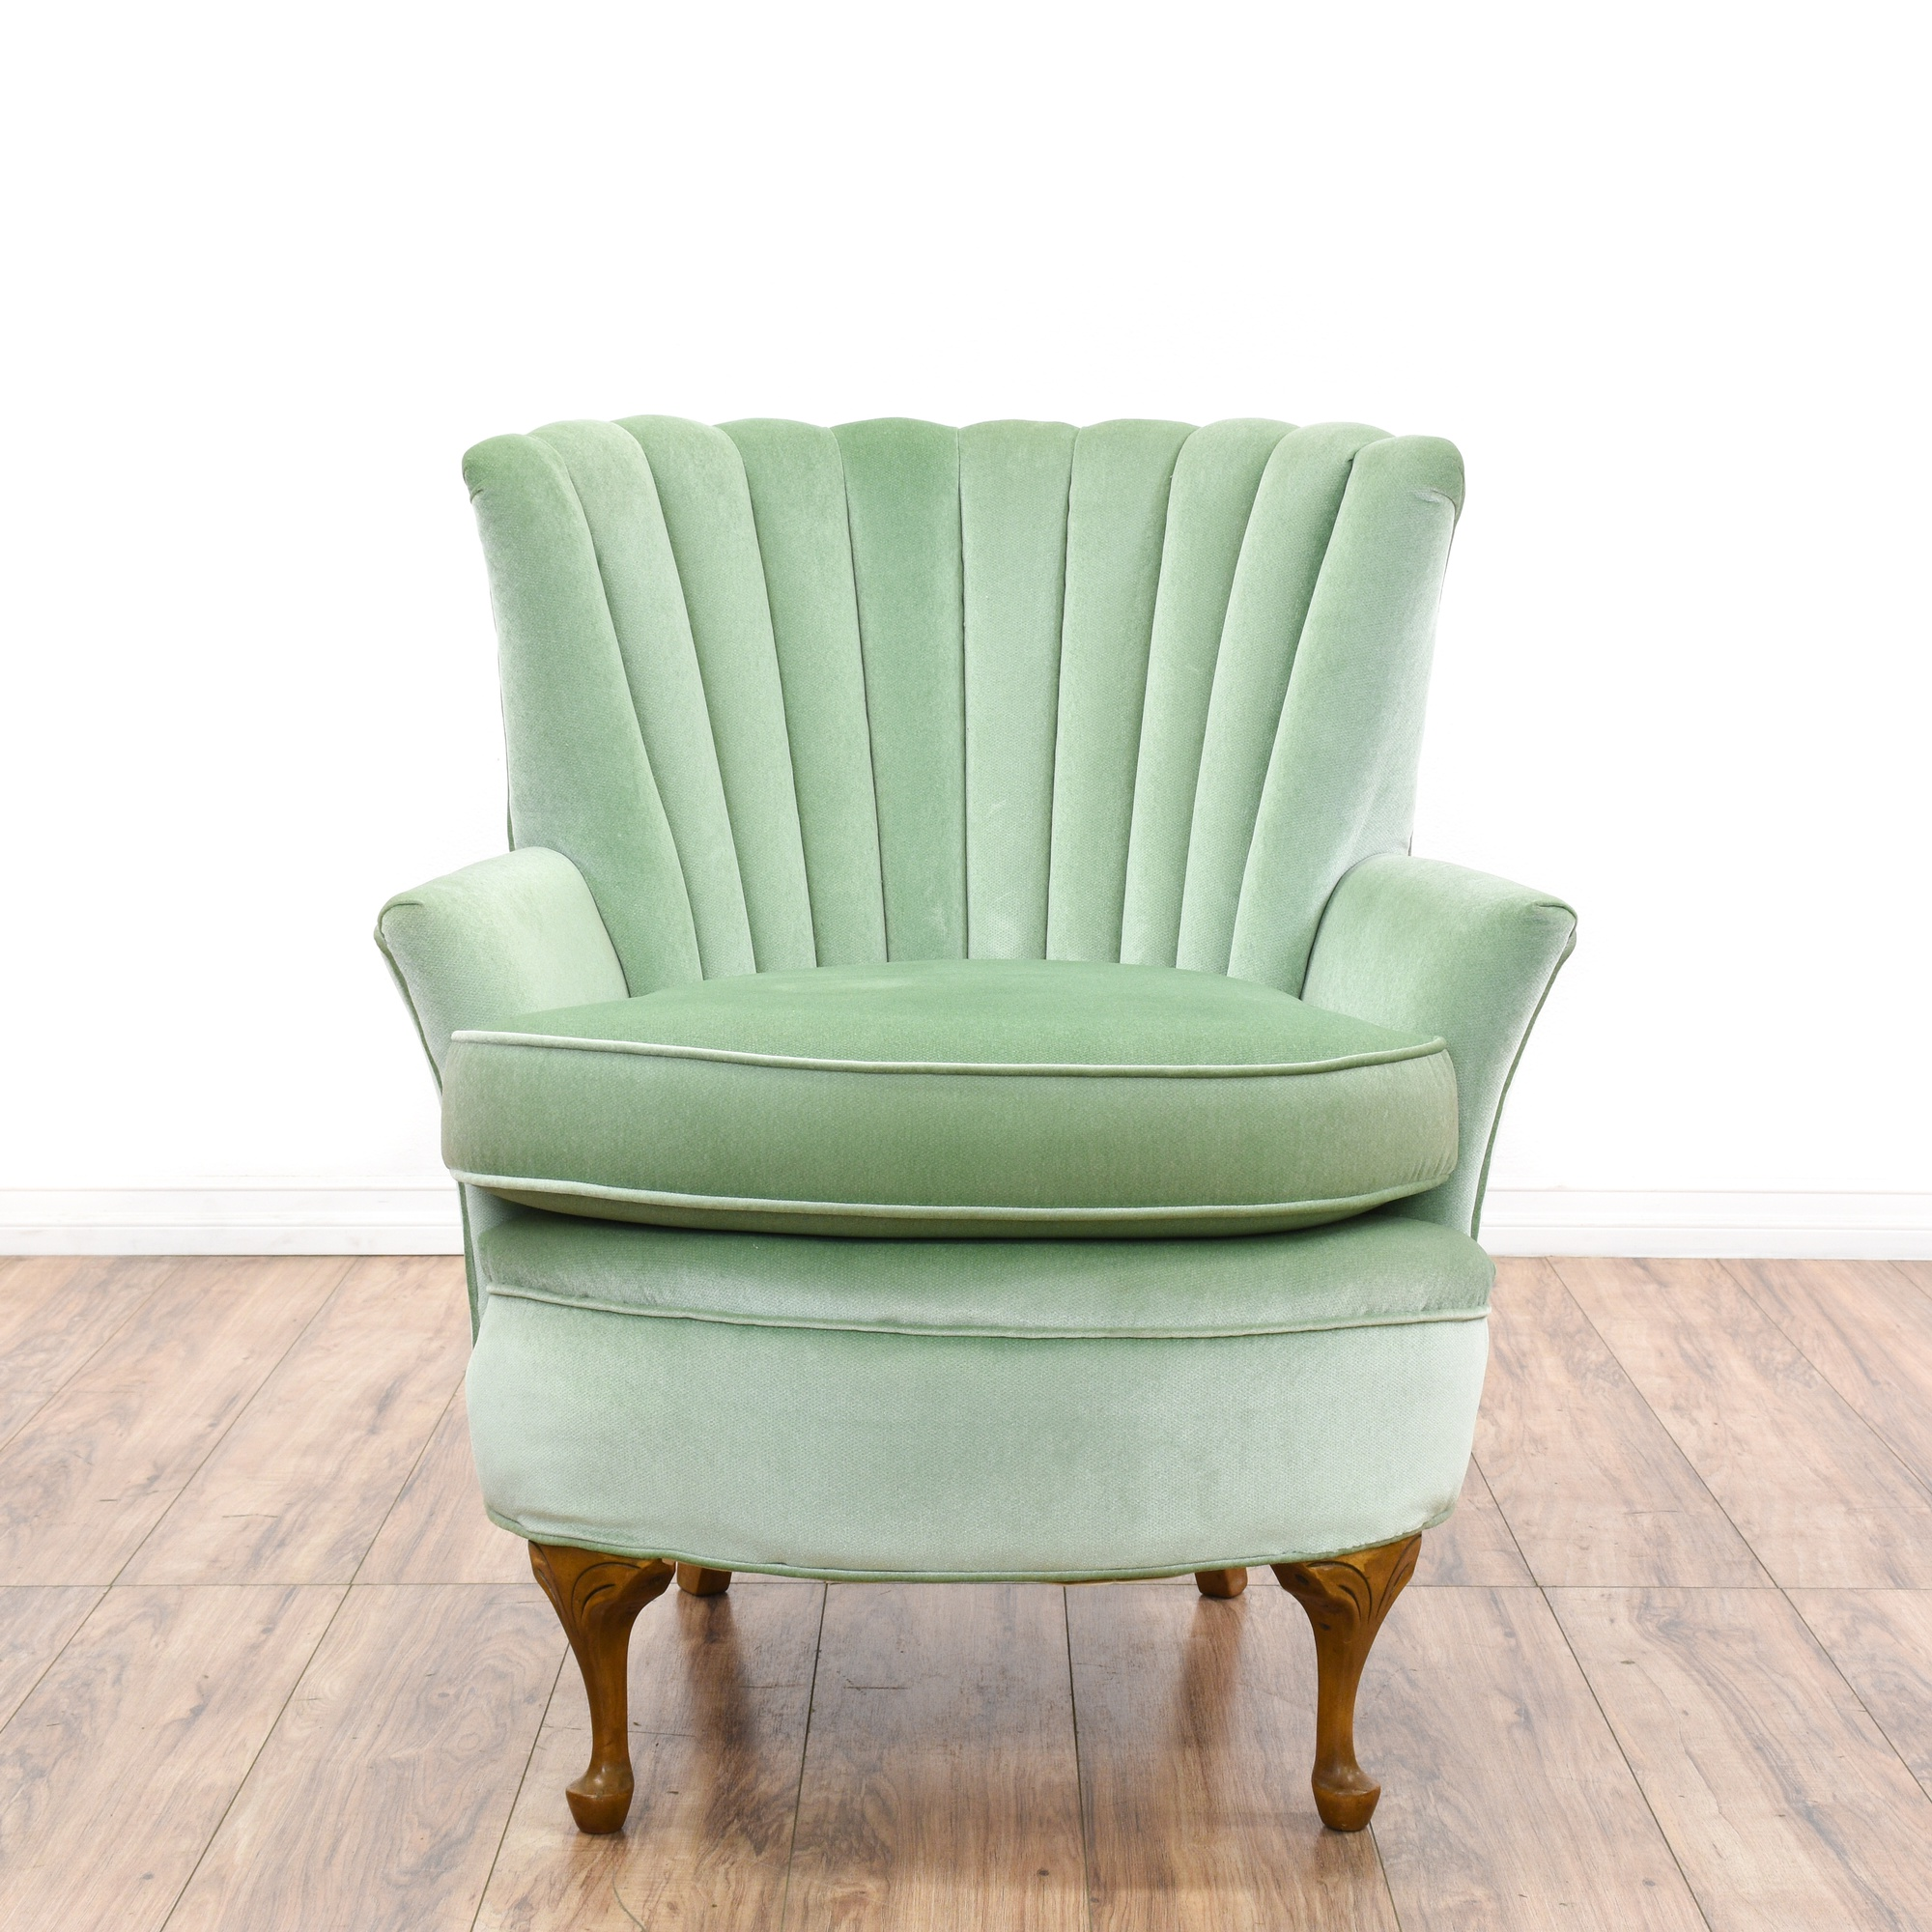 Regency Mint Green Velvet Channel Back Armchair